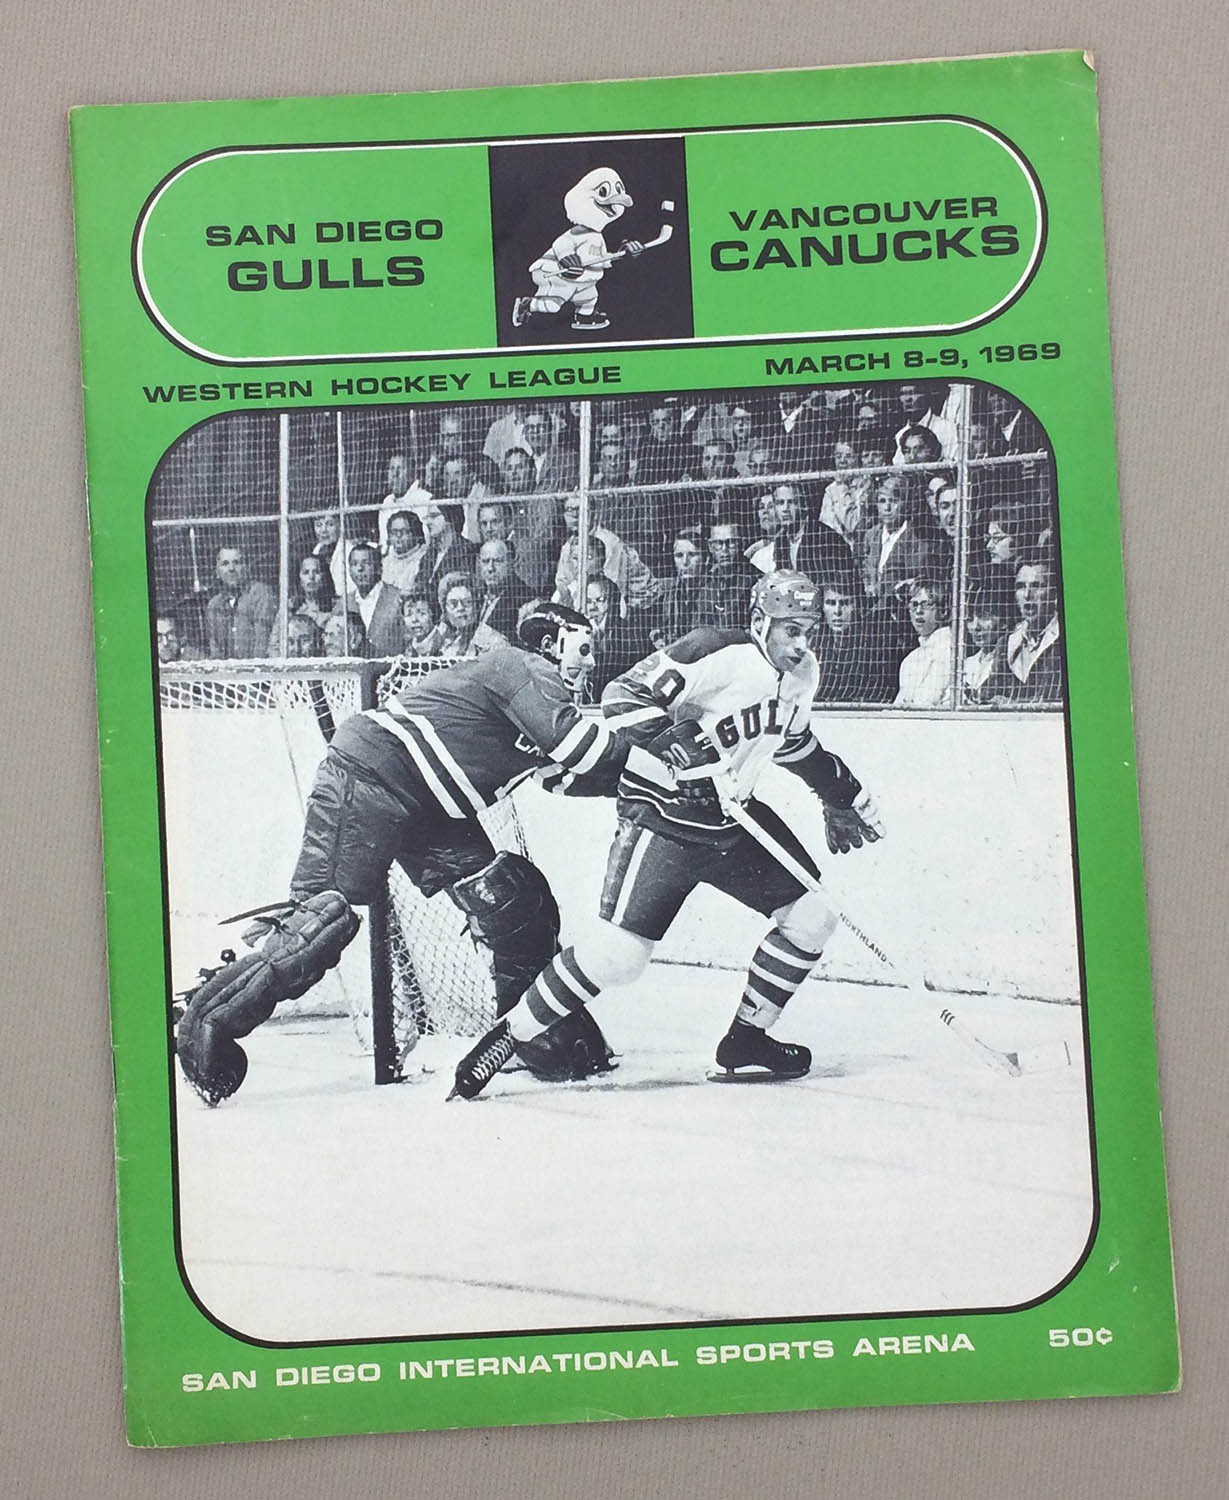 San Diego Gulls March 1969 Program Sportshistorycollectibles Com